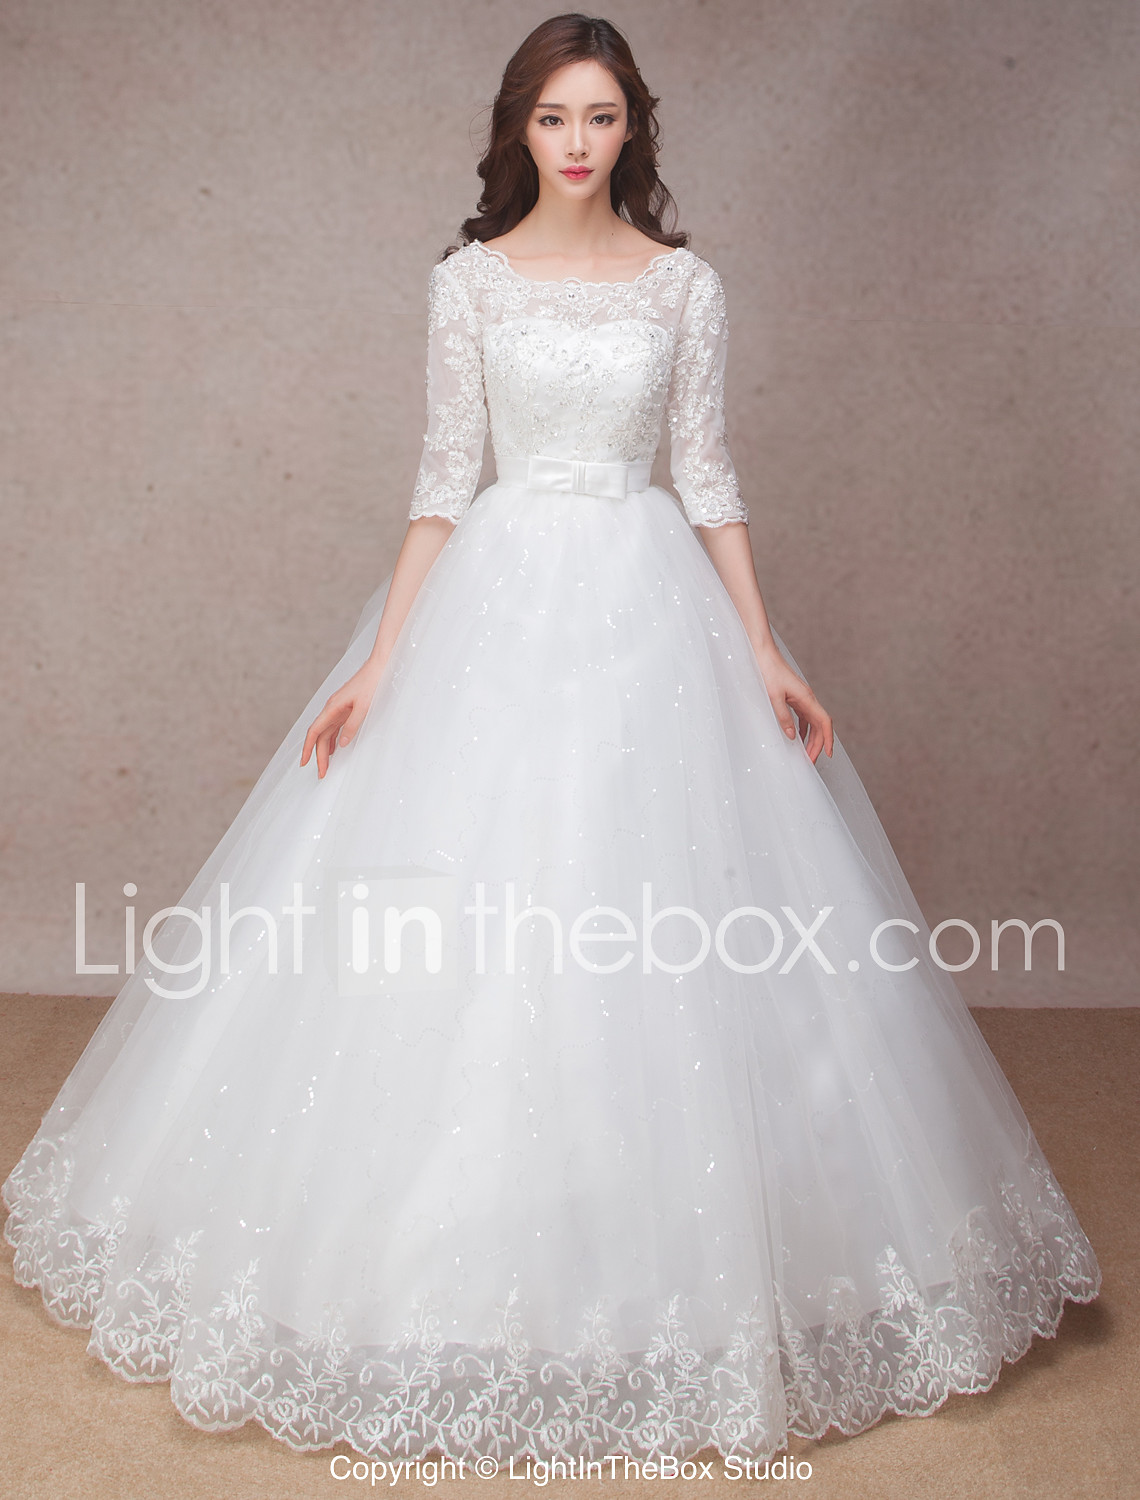 wedding dresses wedding dressing Princess Wedding Dress Lacy Look Floor length Scoop Lace with Bow Flower Ruffle